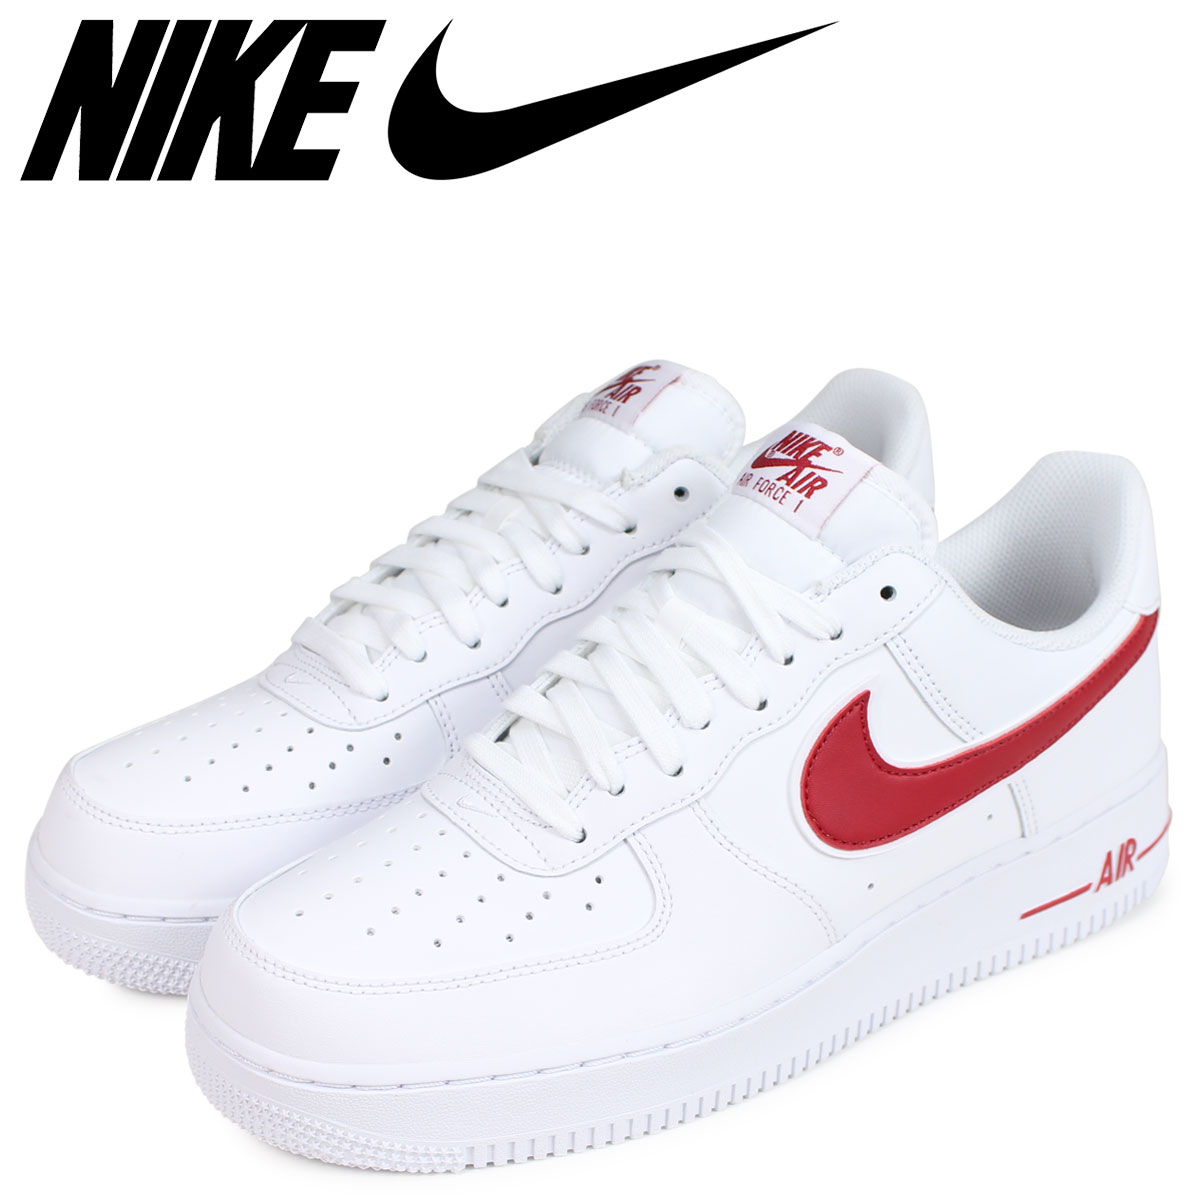 50b5693c0fe7 NIKE Nike air force 1 sneakers men AIR FORCE 1 07 3 white AO2423-102  load  planned Shinnyu load in reservation product 2 14 containing